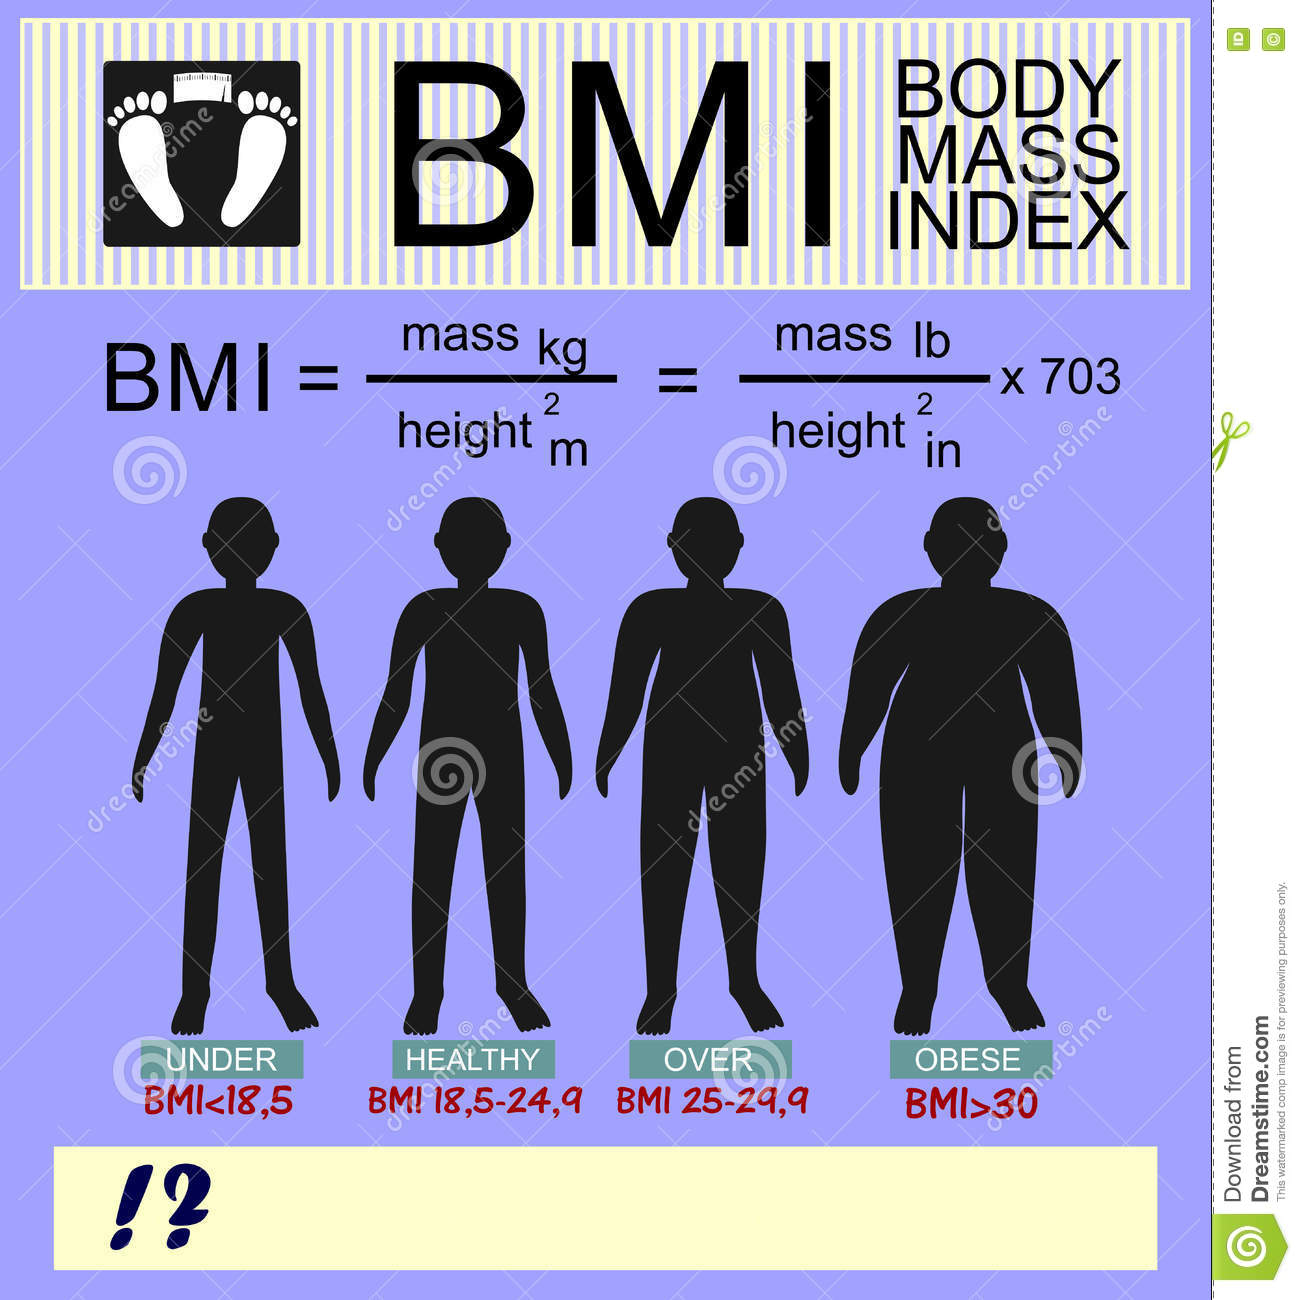 Body mass index and silhouettes of different versions of the calculation